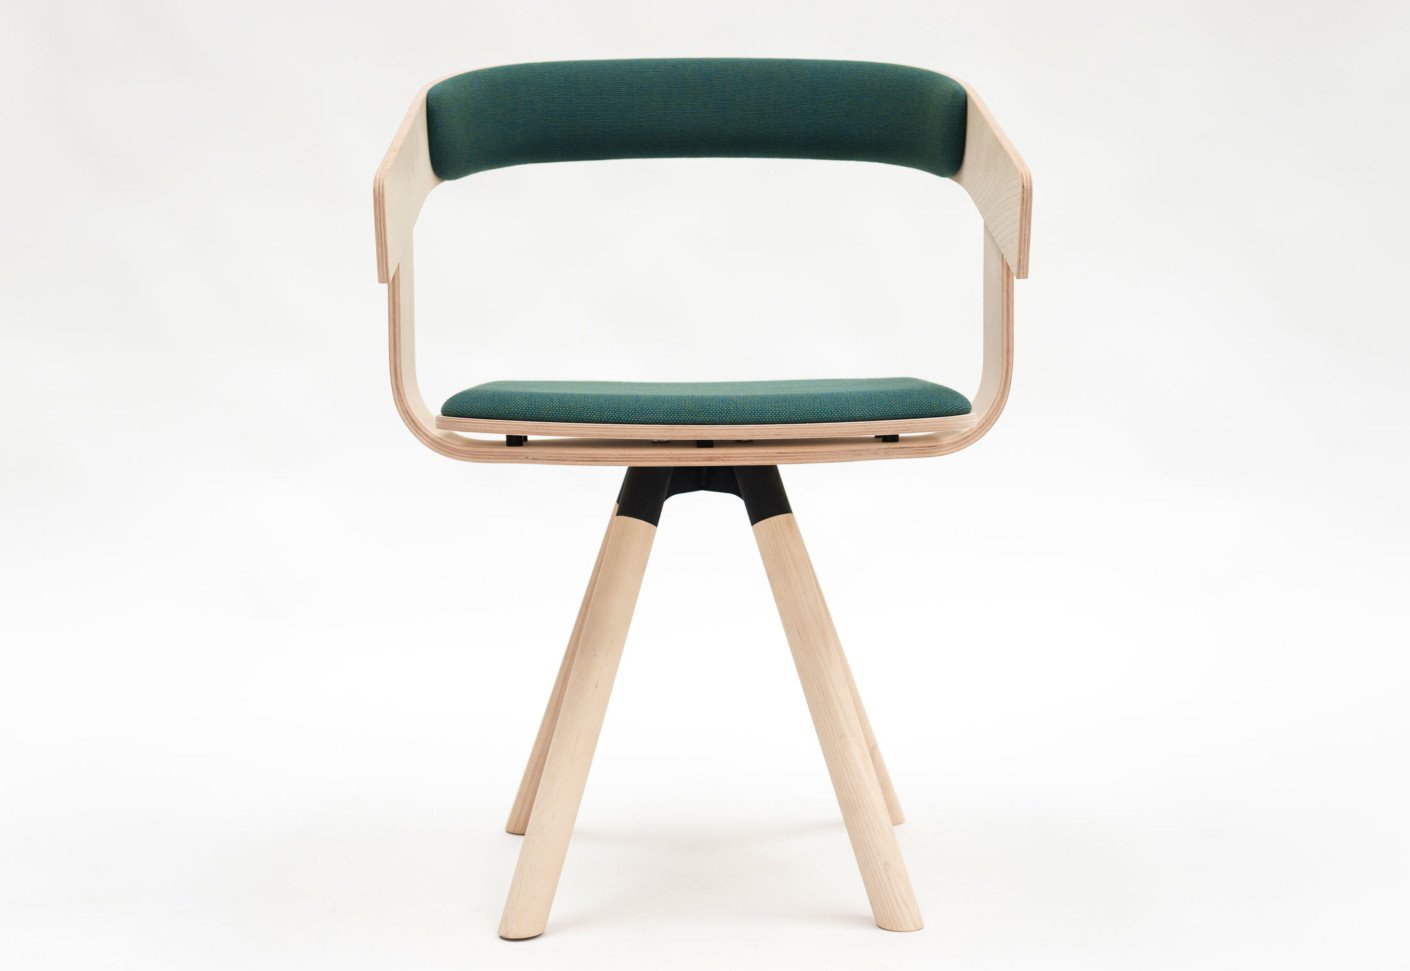 BuzziFloat Chair by Alain Gilles for BuzziSpace